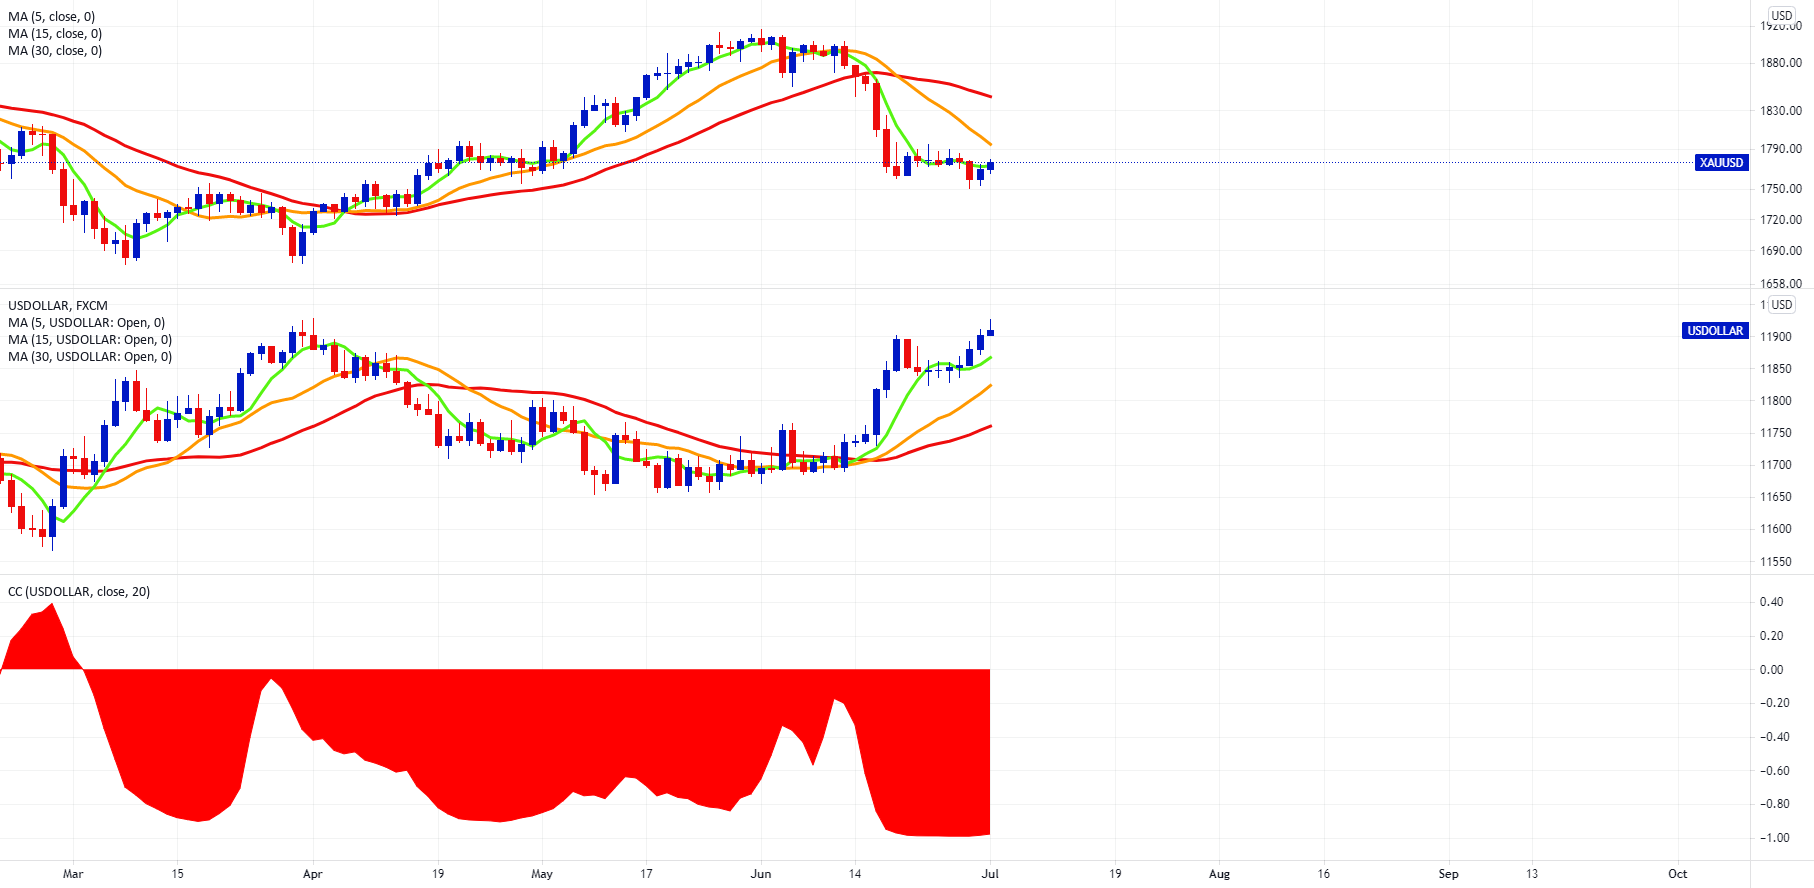 FXCM's Top Down Gold Analysis for FX:XAUUSD by FXCM